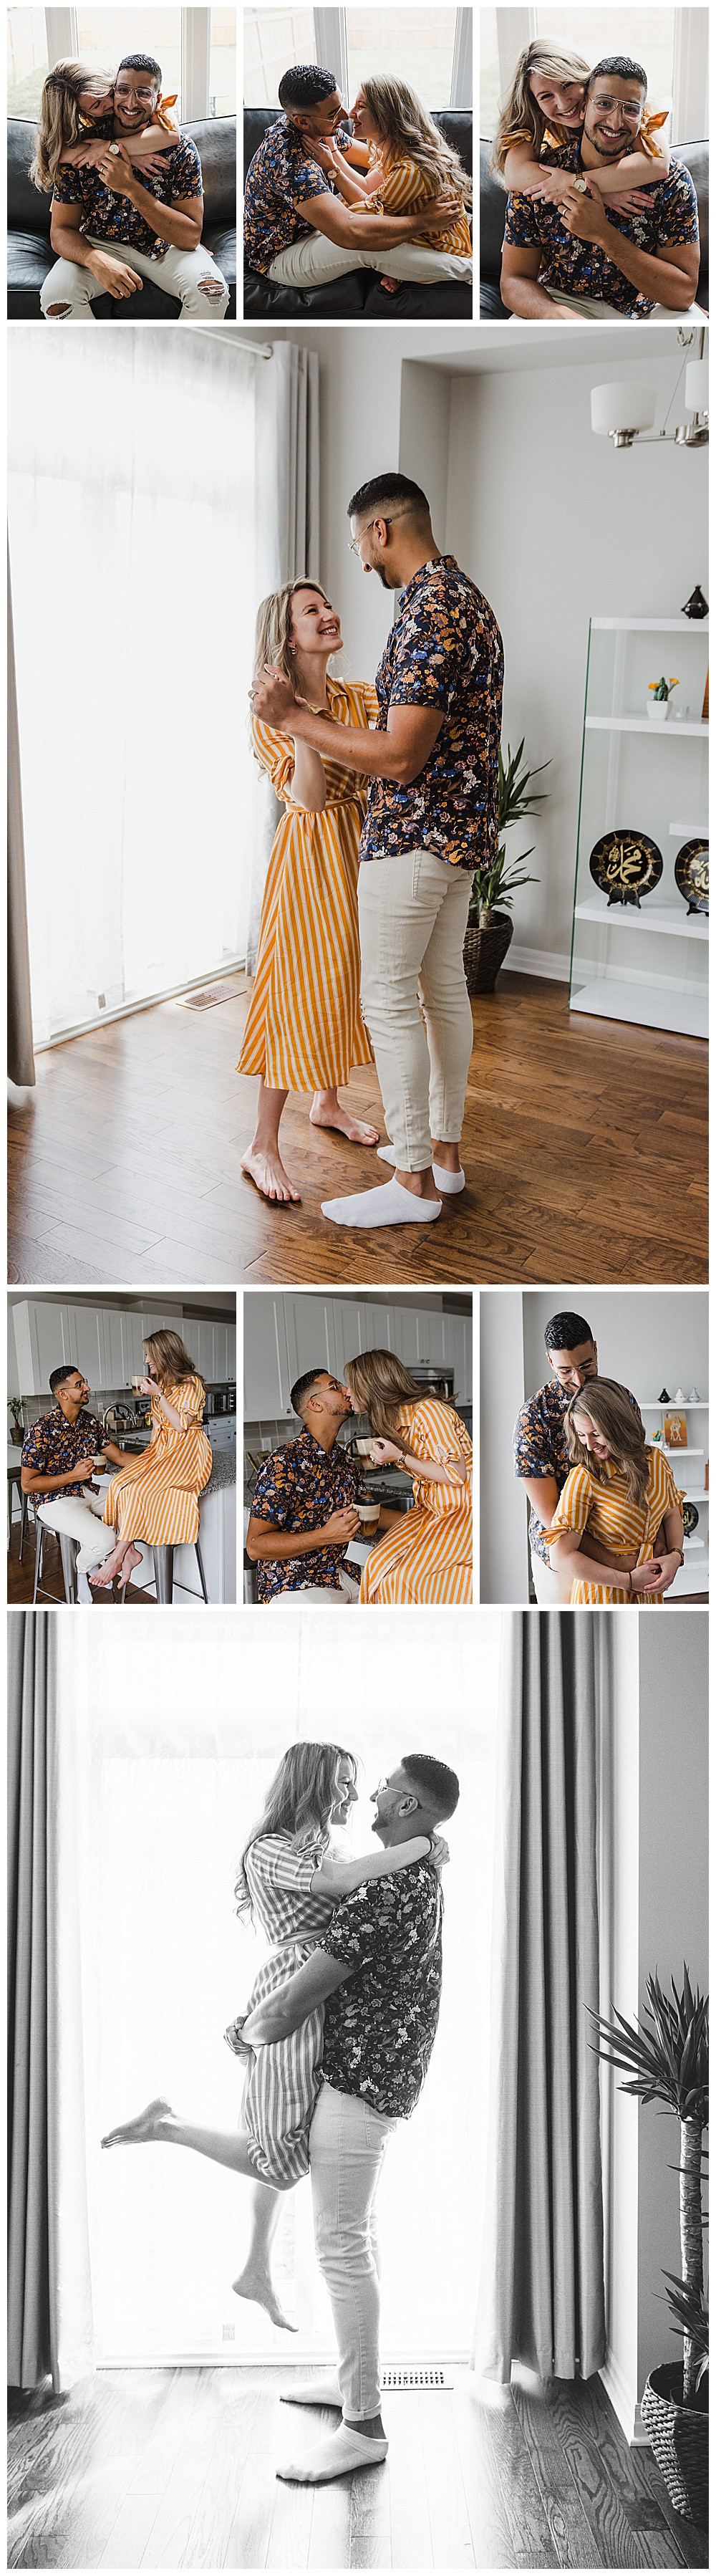 Ottawa Photographer, Ottawa Photography, Ottawa Wedding Photographer, Ottawa Boudoir Photographer, Ottawa In-Home Lifestyle Session, New Home Session, Amyna & Ayoub